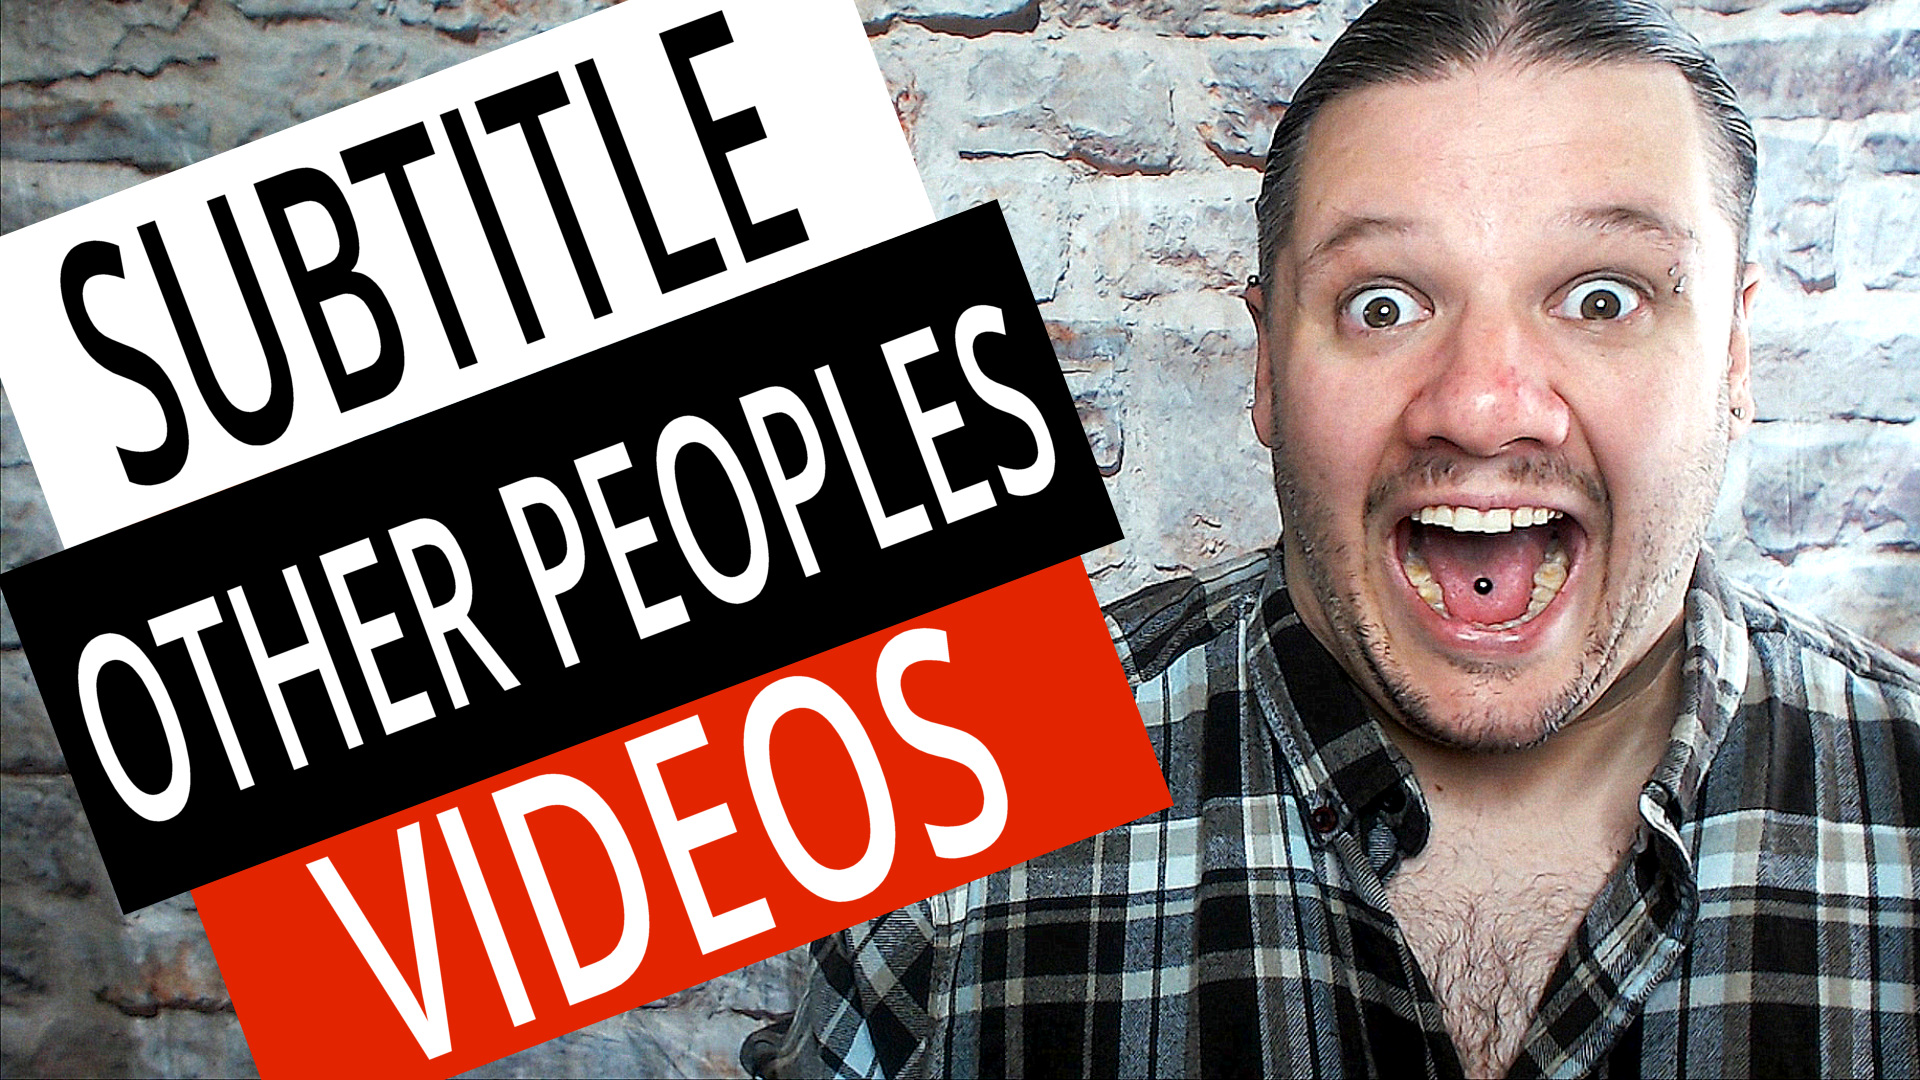 alan spicer,how to add subtitles to other peoples videos,how to add subtitles to other people's videos,add subtitles to a youtube video,youtube subtitles,create subtitles for youtube,create captions for youtube,closed captions,how to create captions / subtitles for youtube videos,how to create subtitles for your youtube videos,youtube transcriptions,add subtitles to youtube videos,how to add subtitles to a video,contribute subtitles youtube,contribute subtitles